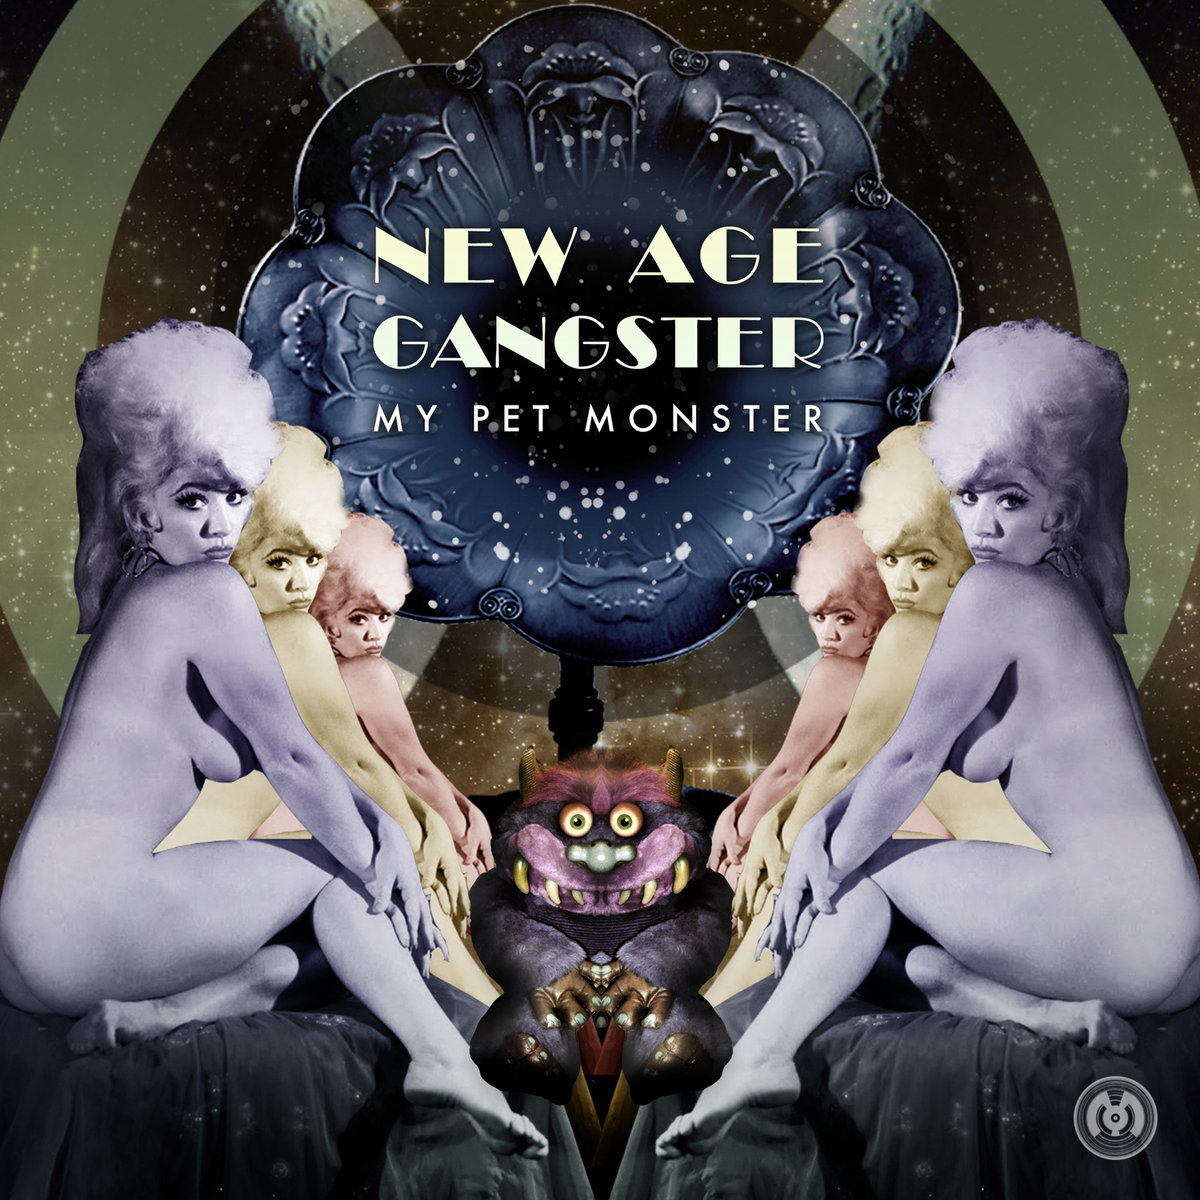 My Pet Monster - New Age Gangster @ 'New Age Gangster' album (electronic, dubstep)